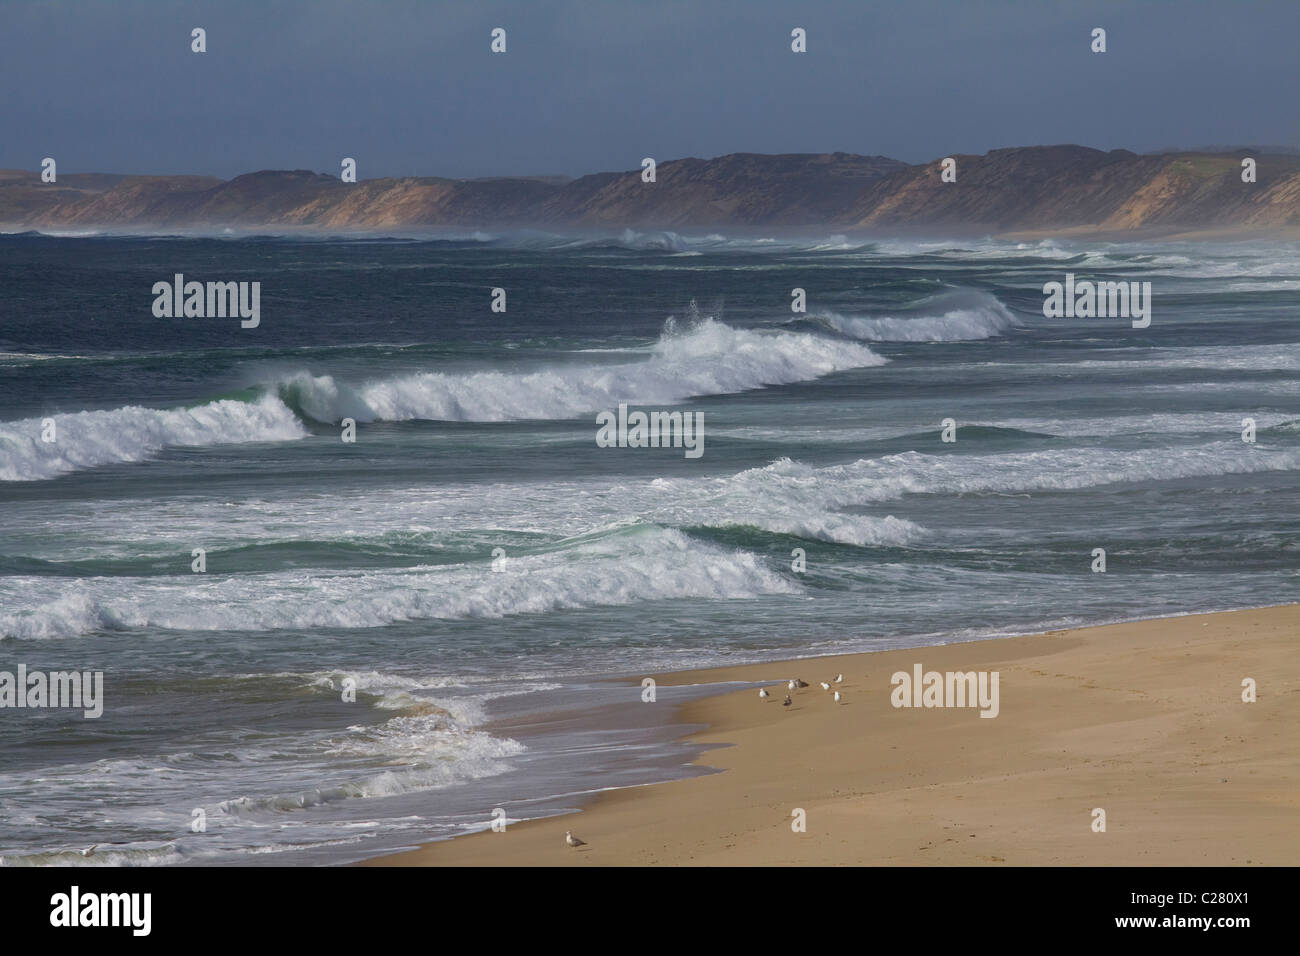 Spectacular California coastline at Monterey Bay, Central California, USA - Stock Image